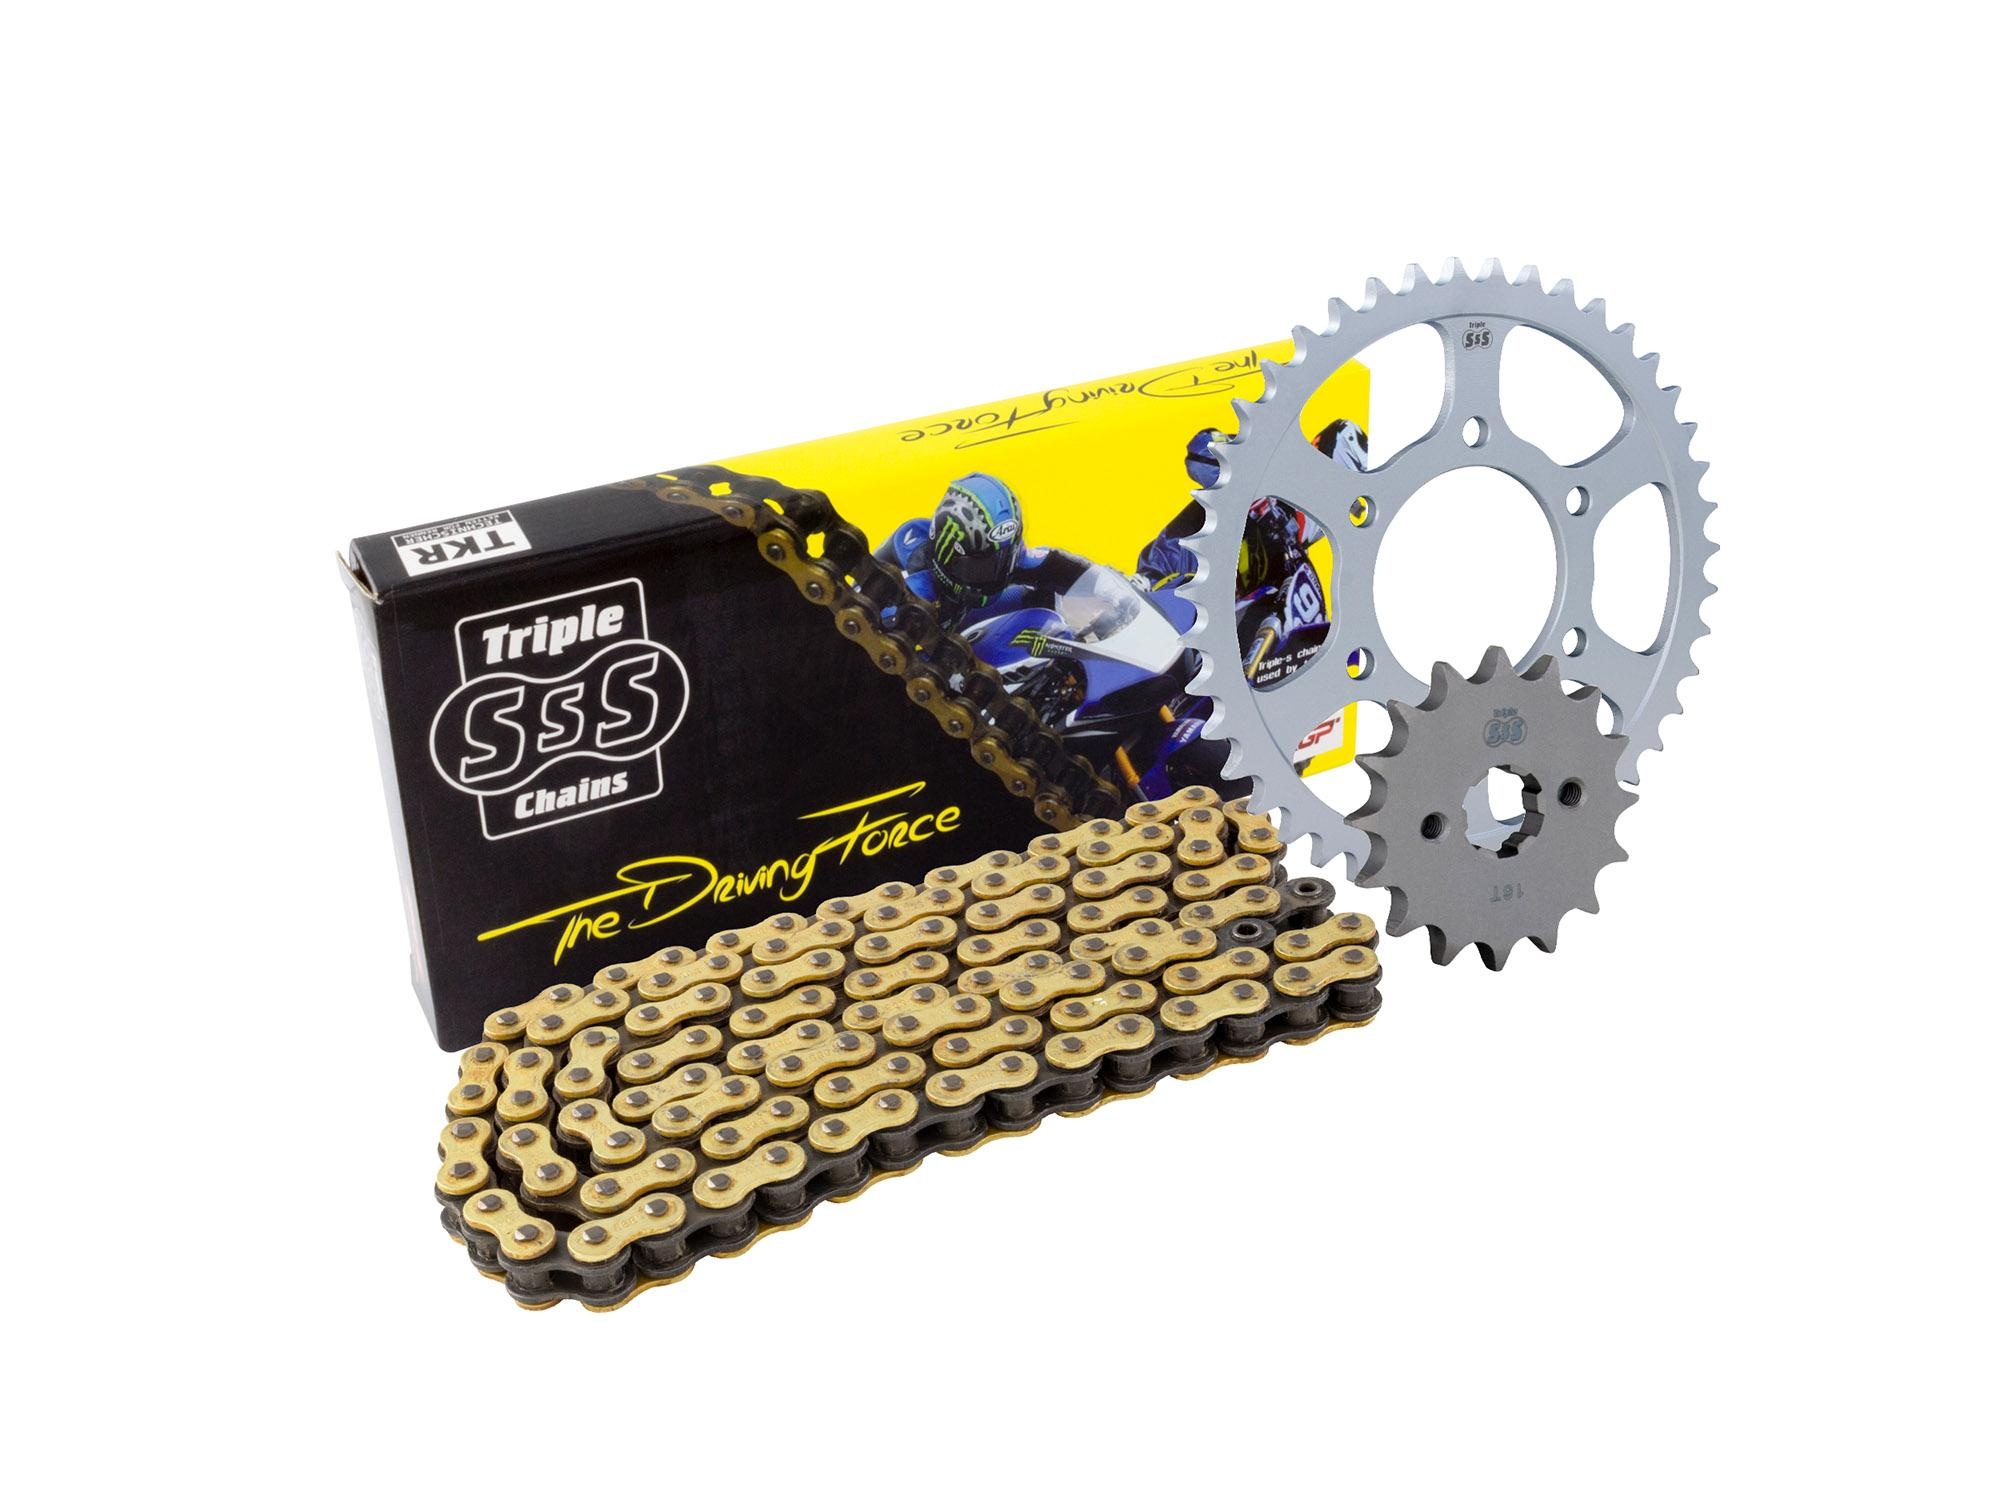 Kawasaki W800 11-16 Chain & Sprocket Kit: 15T Front, 37T Rear, HD O-Ring Gold Chain 520H 104Link